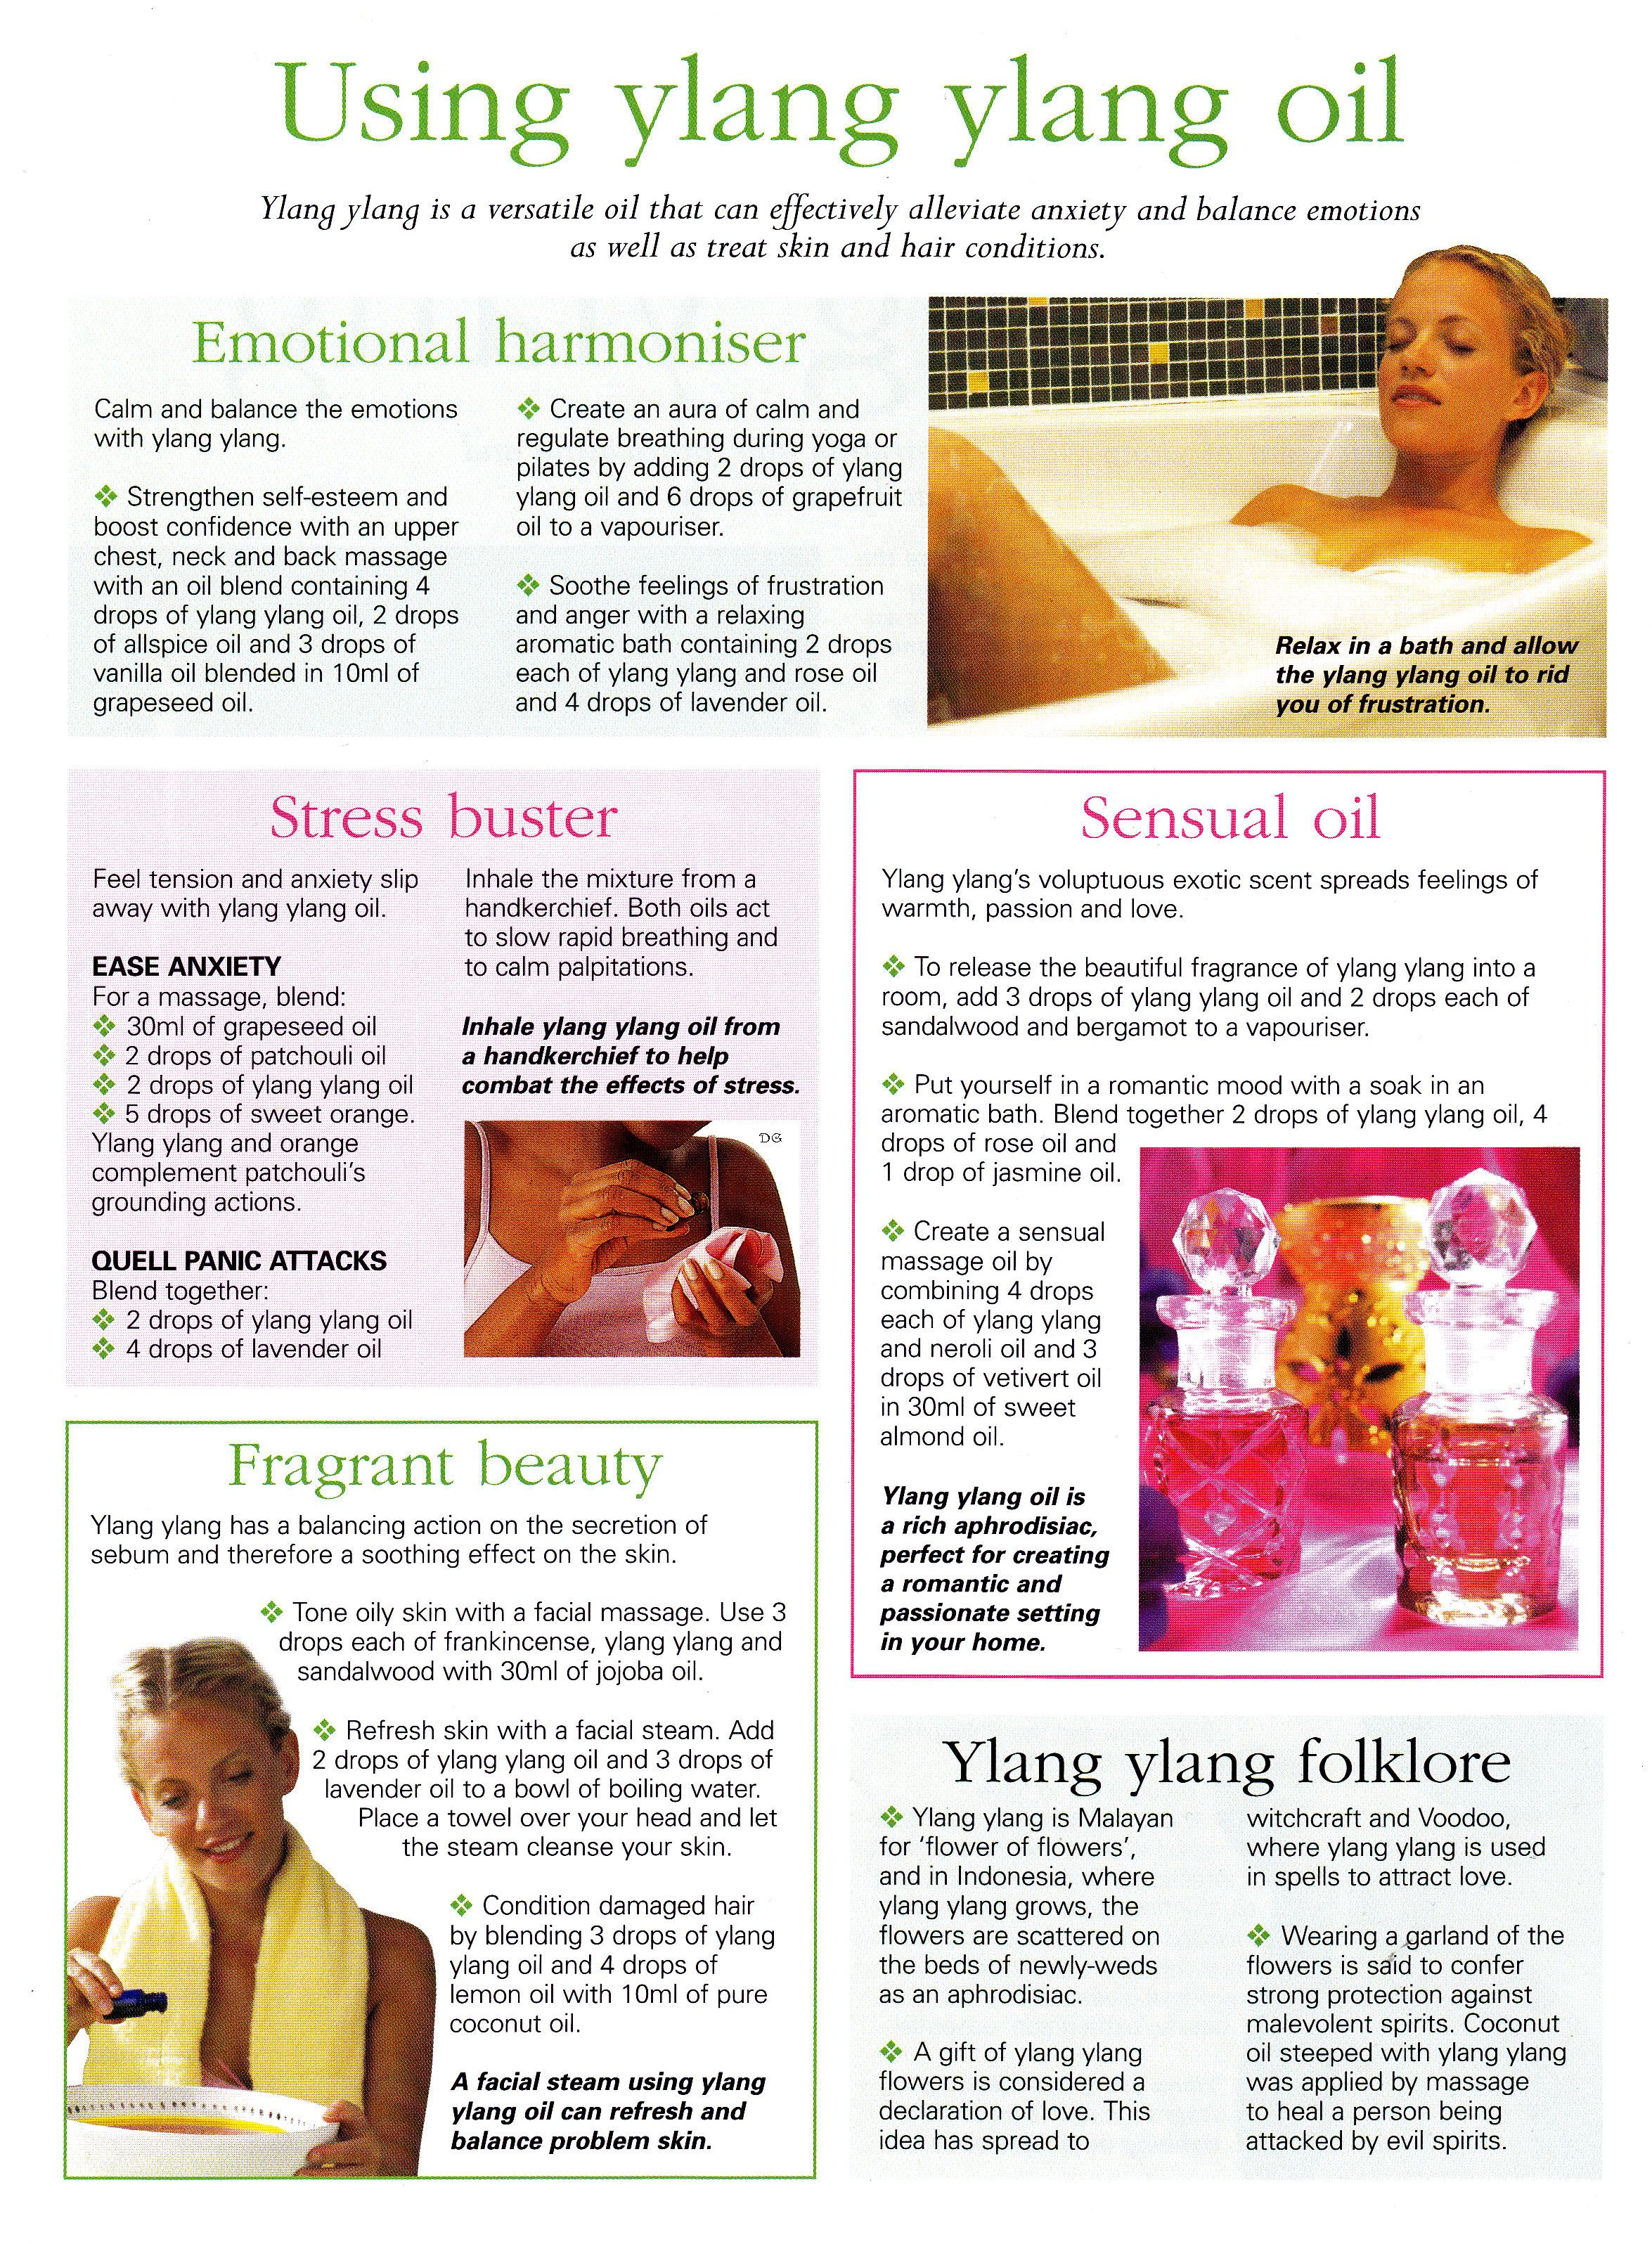 Ylang Ylang Essential Oil I Ve Been Wearing A Few Drops Of This As My New Perfume And It Make Essential Oils Essential Oils Health Essential Oils Aromatherapy